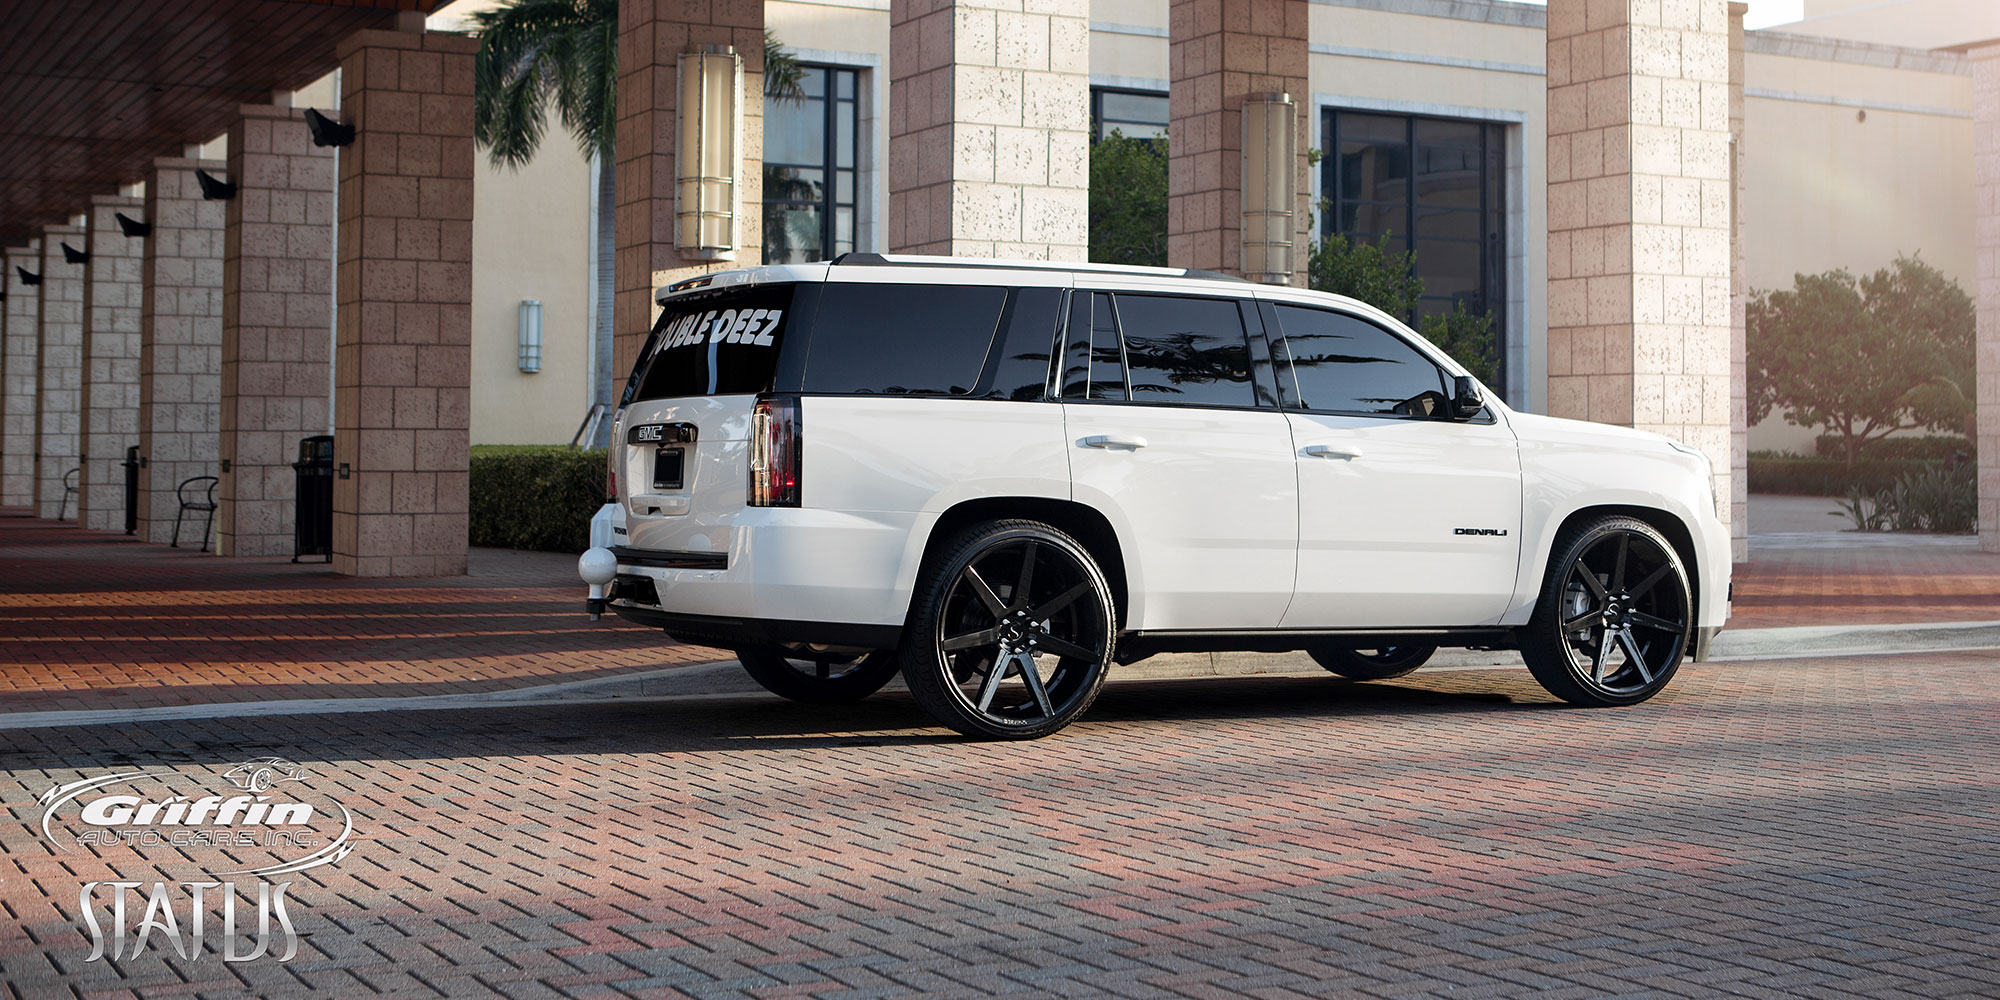 Gmc Yukon S838 Journey Gallery Automotive Import Market